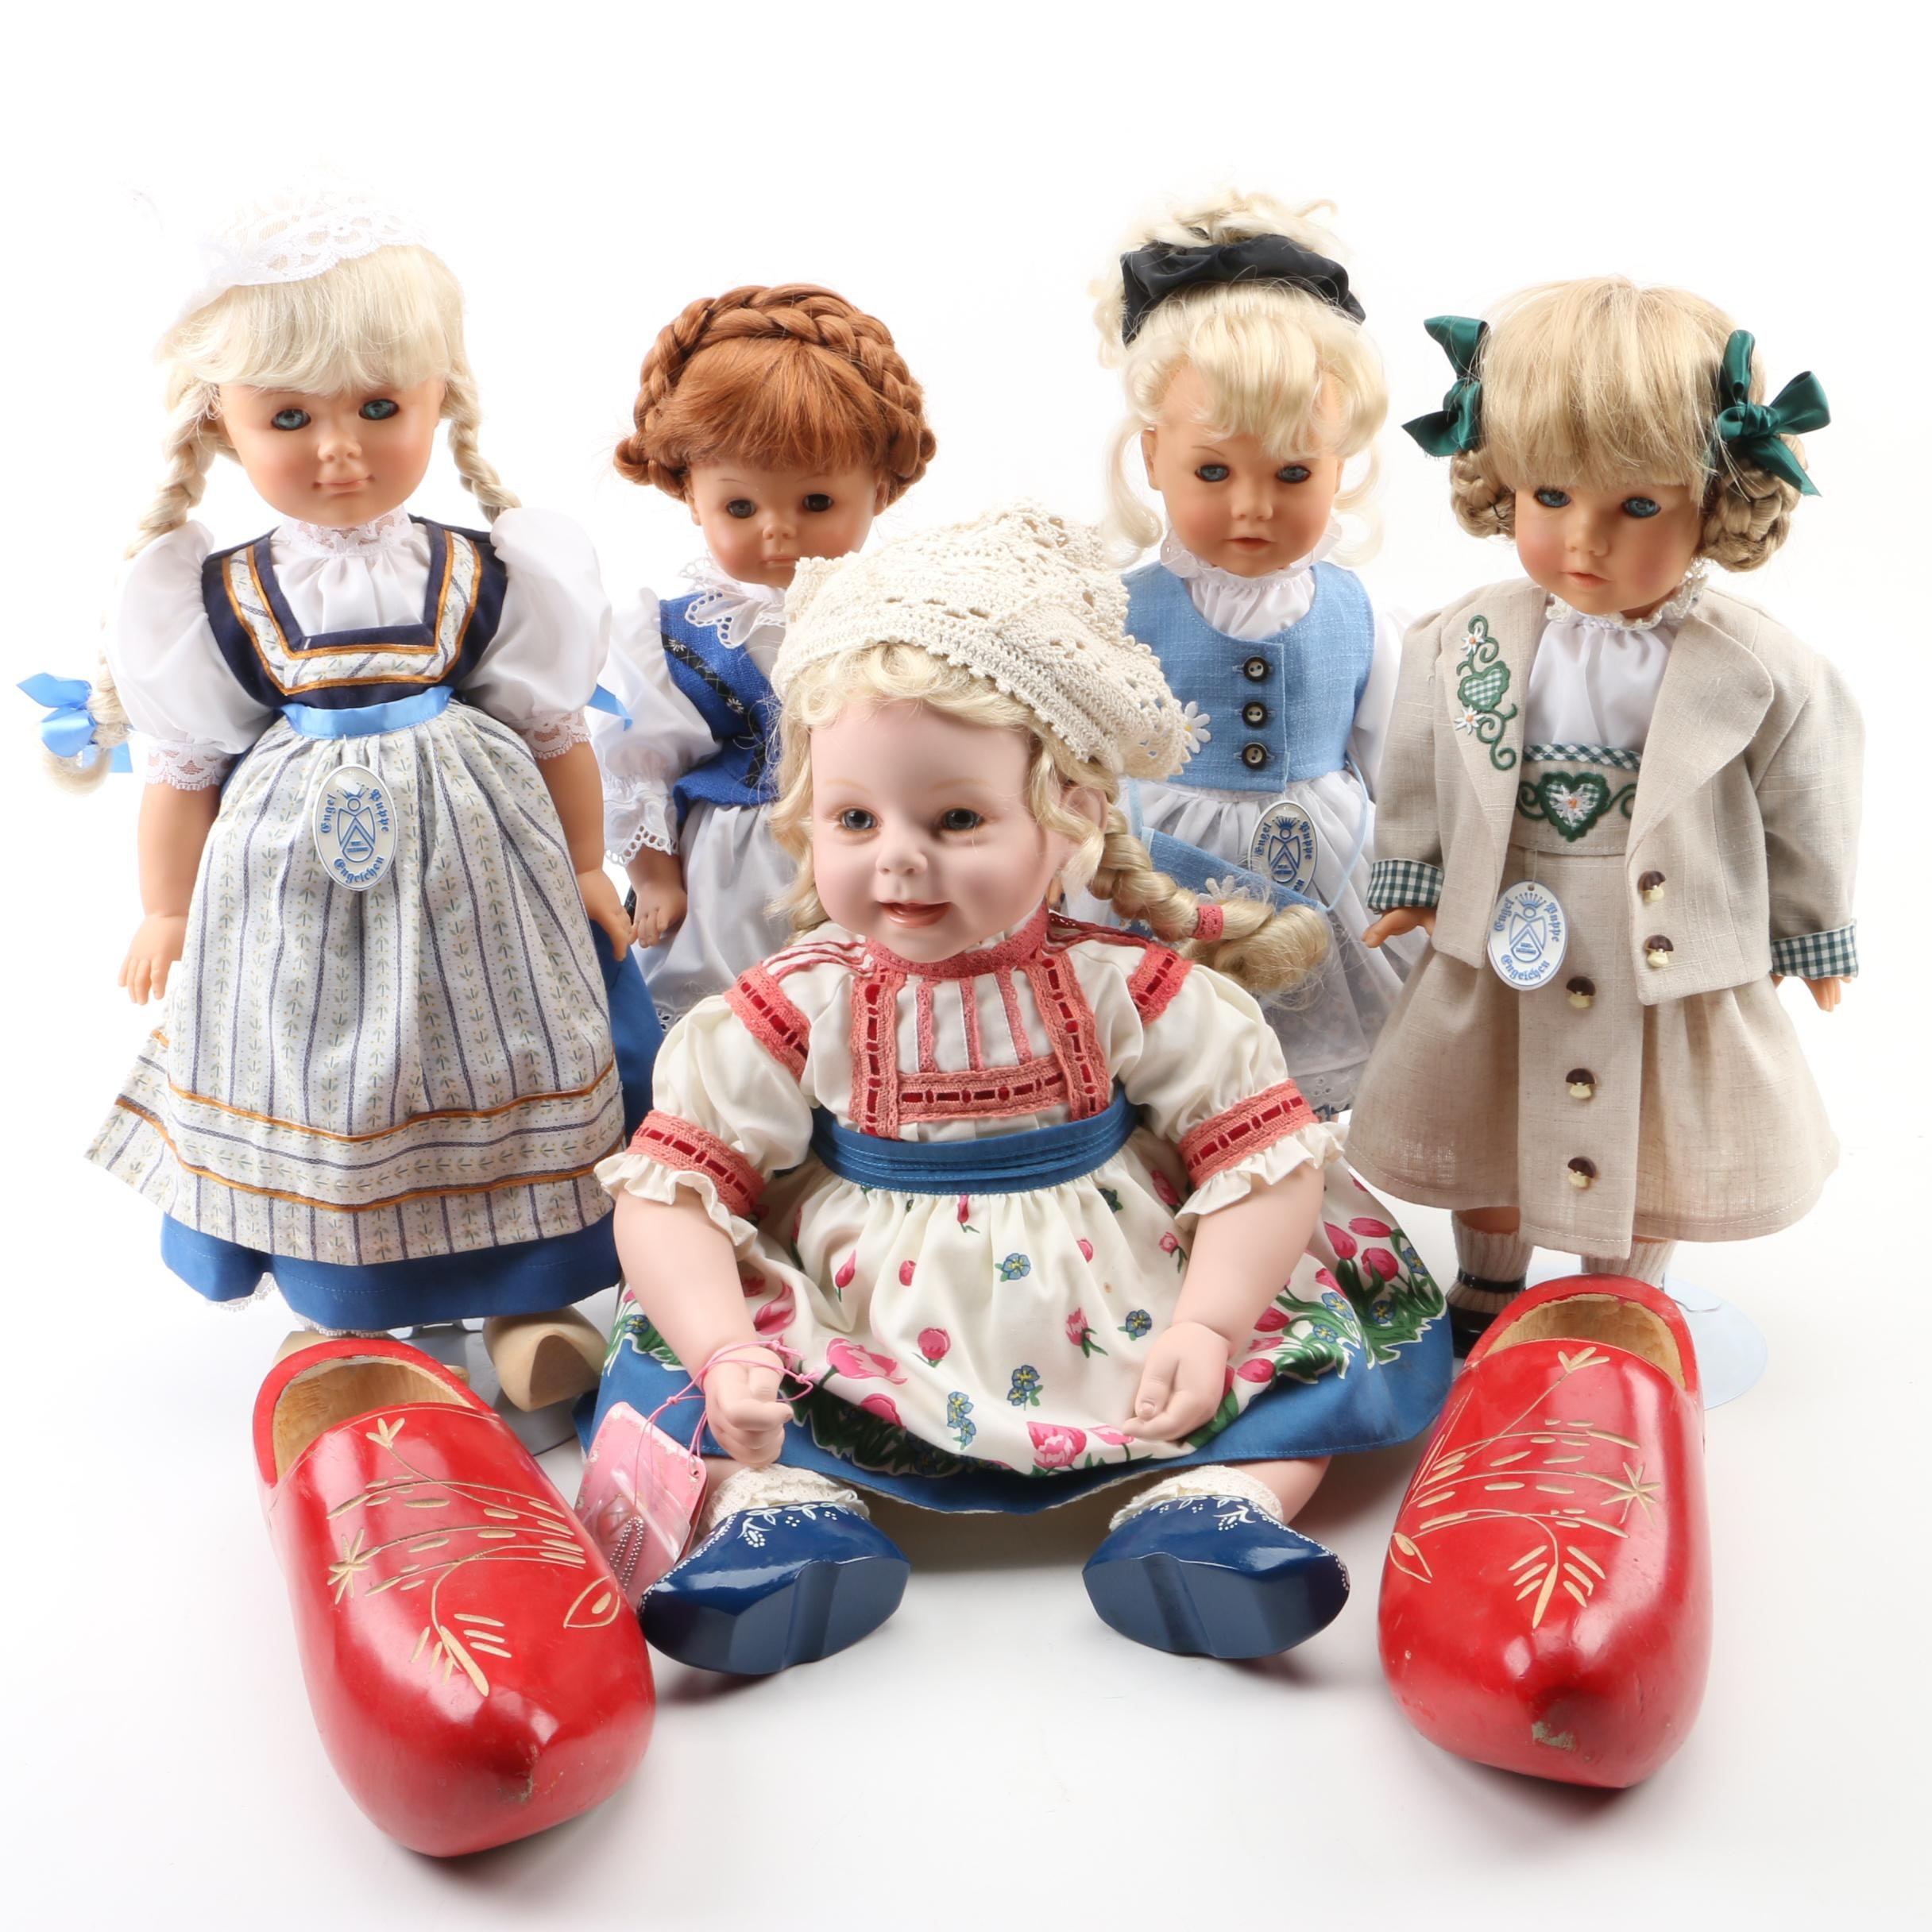 Porcelain and Ceramic Scandinavian Dolls with Wood Clogs